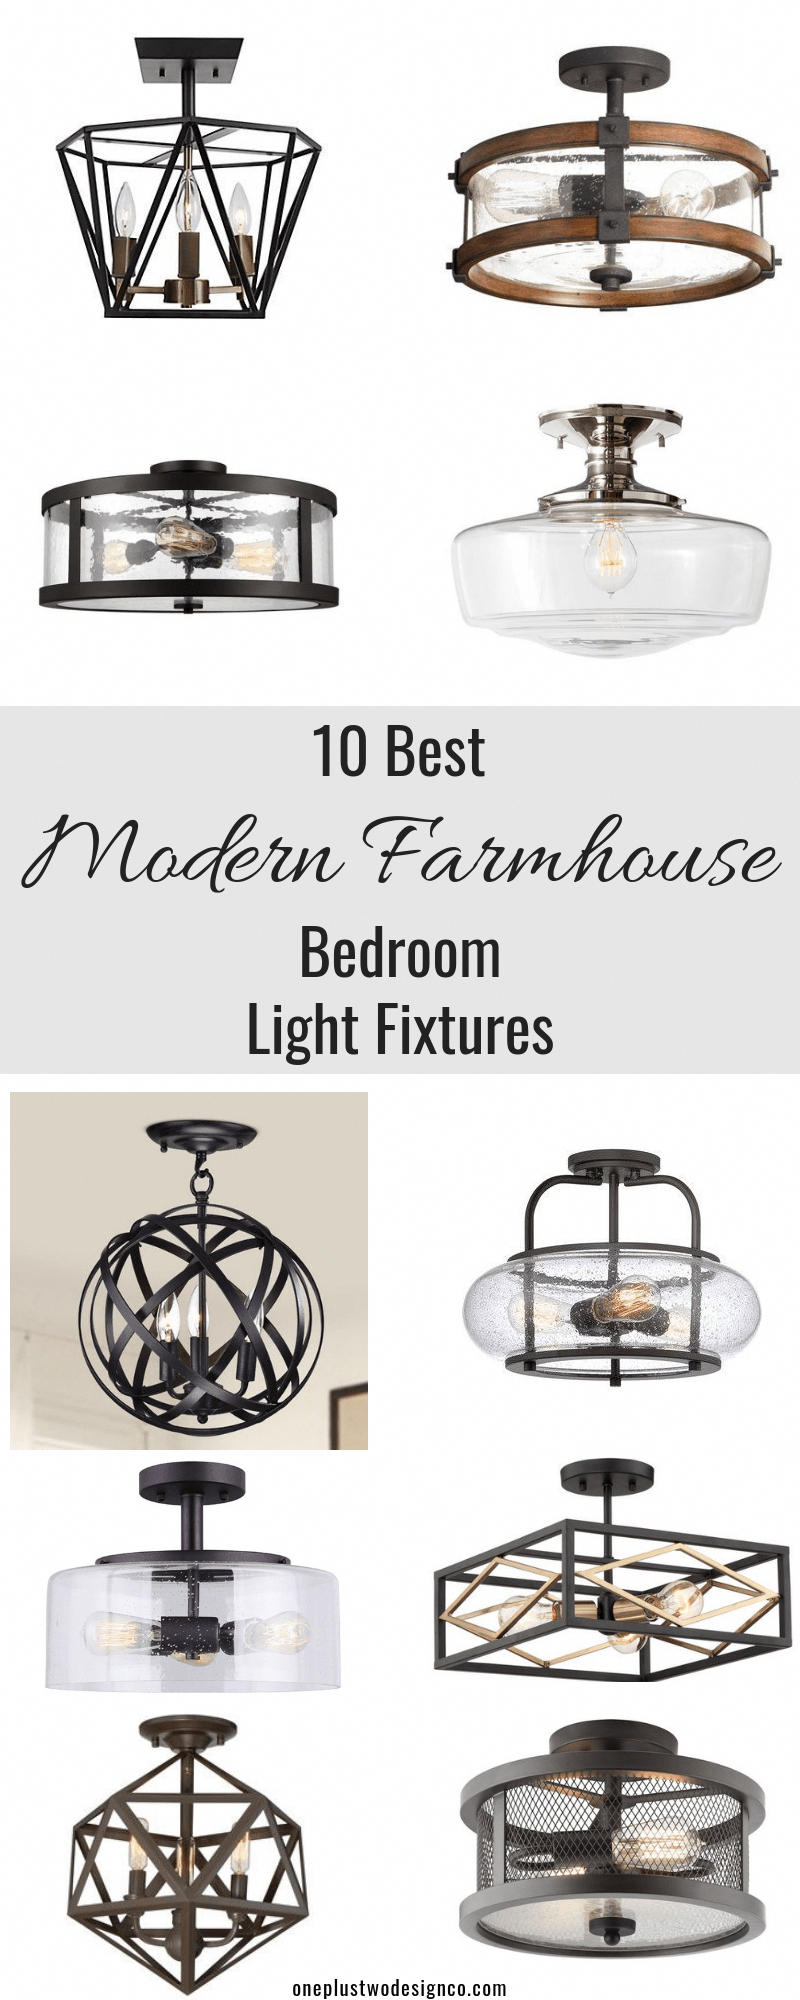 Choose one of these top 10 semi flush fixtures for your